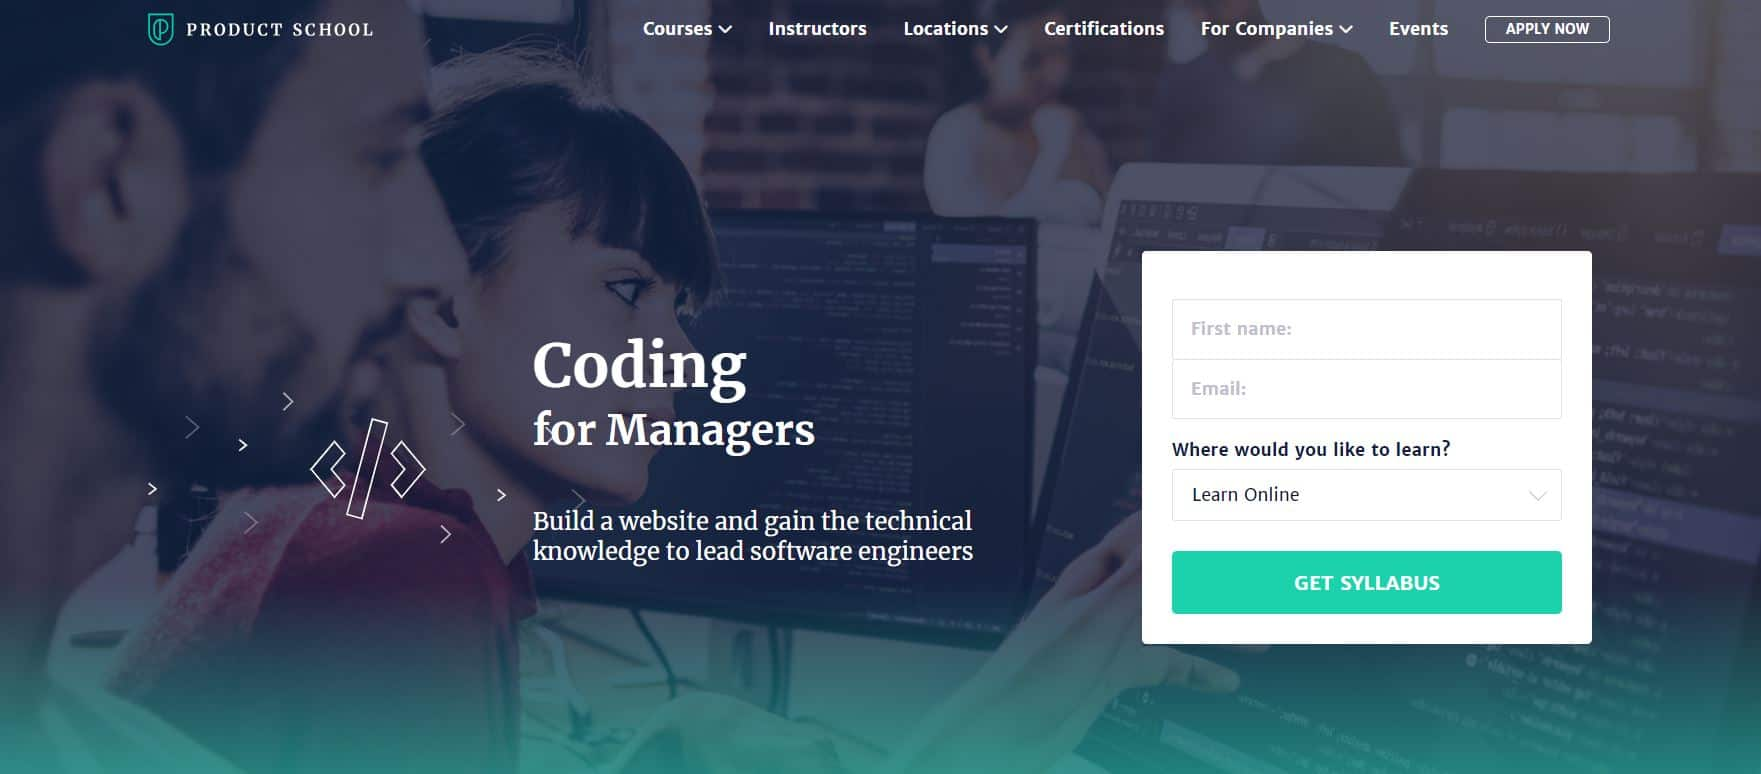 Product School's Coding Courses